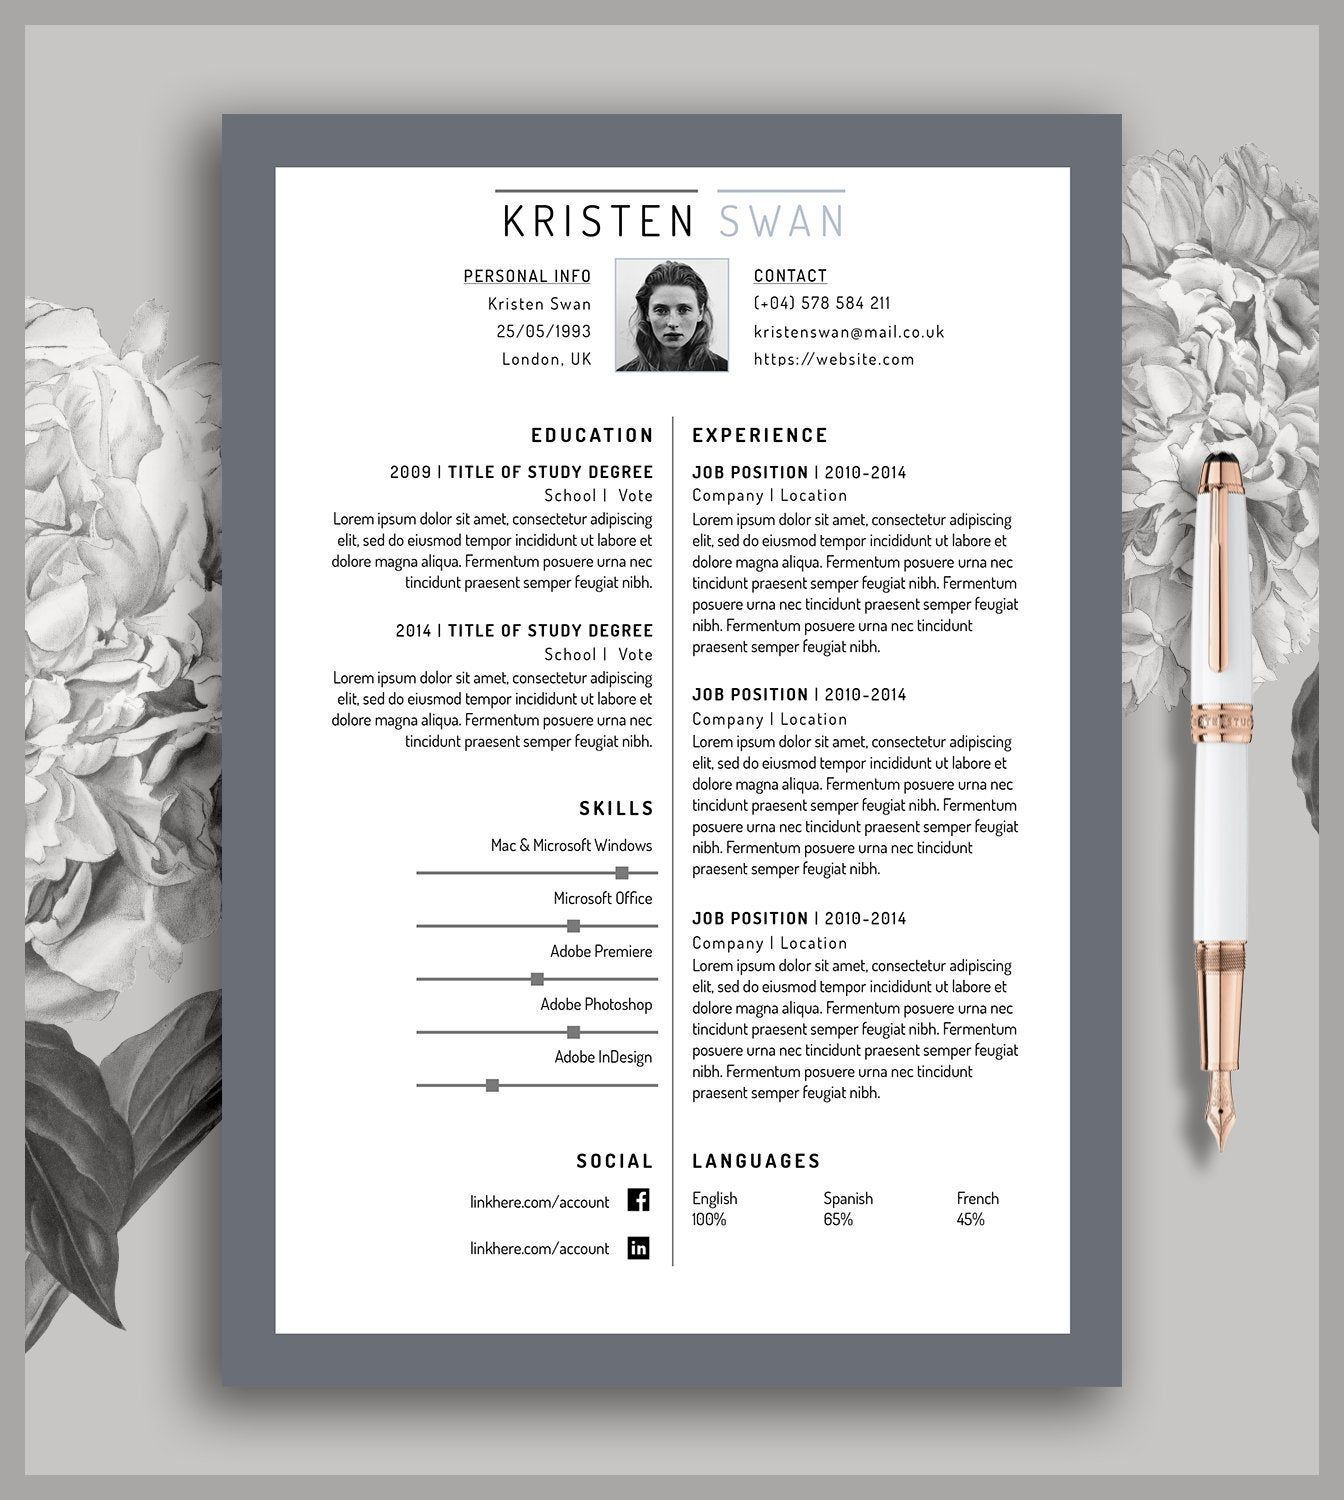 Modello Curriculum 2 Pagine Lettera Di Presentazione Cv Stampabile Ms Word E Pages Digital Download Kristen Lorem Ipsum I Shop London Uk